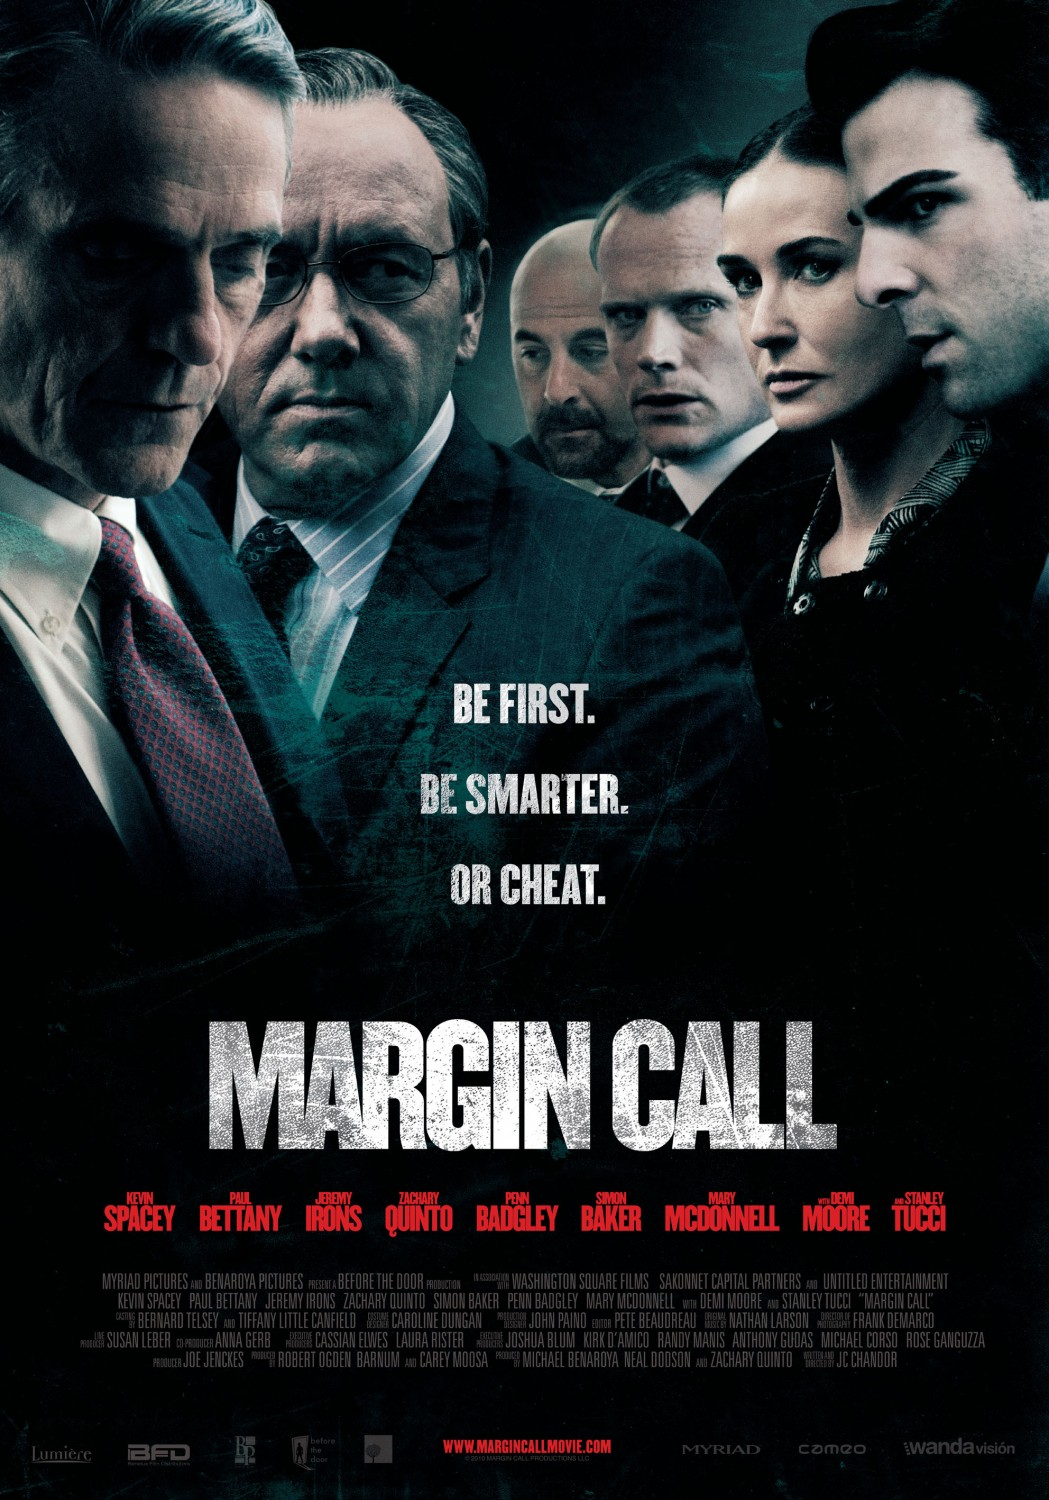 http://3.bp.blogspot.com/-GnG0Cr3F6NQ/Tsw68WrCdDI/AAAAAAAAHzs/qqmuGs_jQAY/s1600/Margin-Call-Poster-3-International.jpg